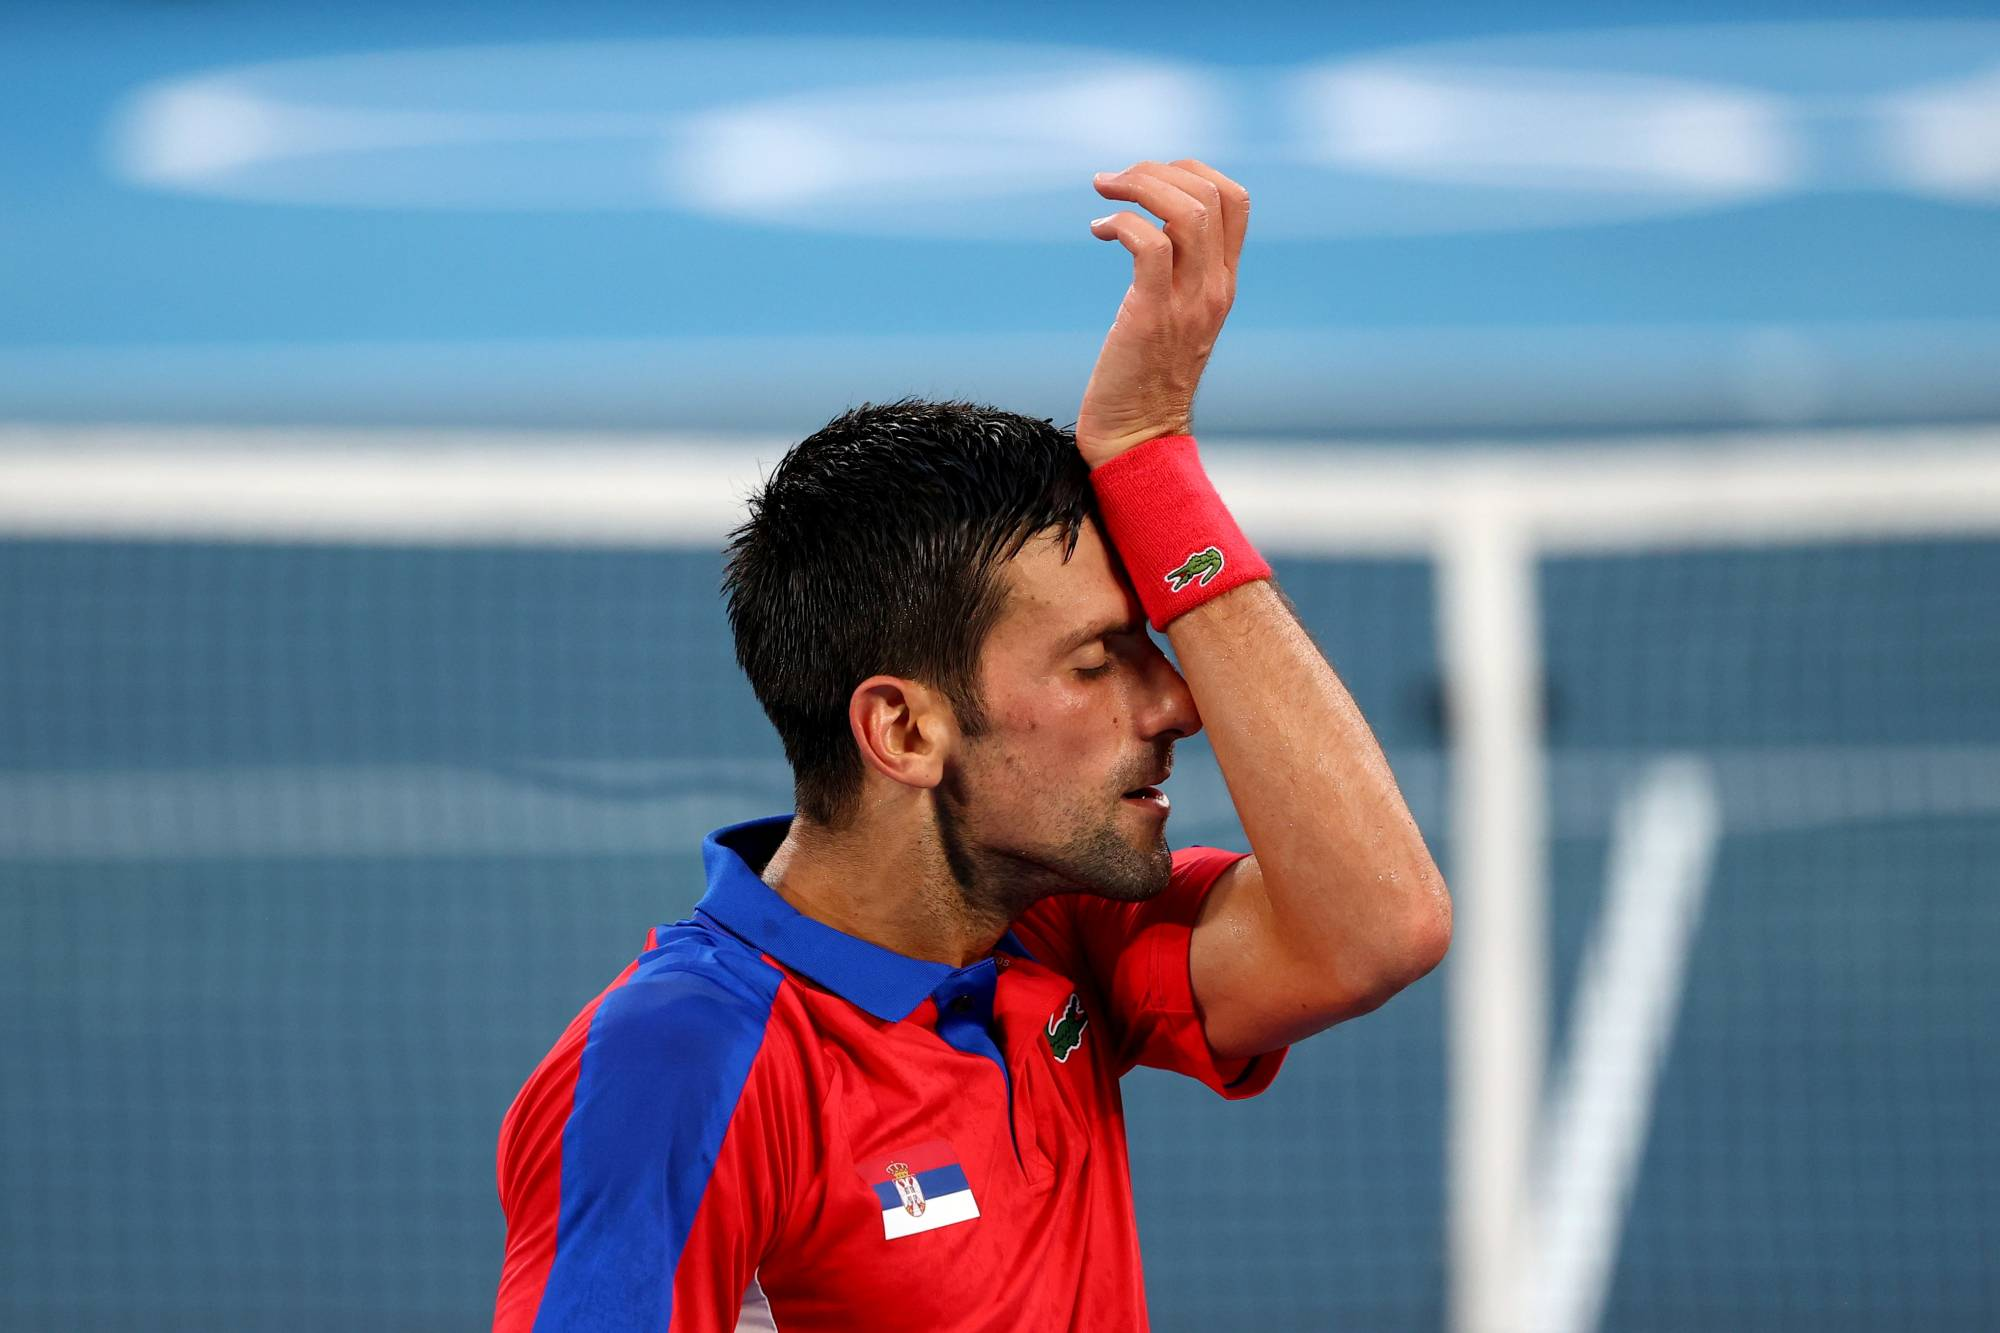 Novak Djokovic of Serbia was beaten by Alexander Zverev of Germany in his semifinal tennis match at the Tokyo Games on Friday. | REUTERS